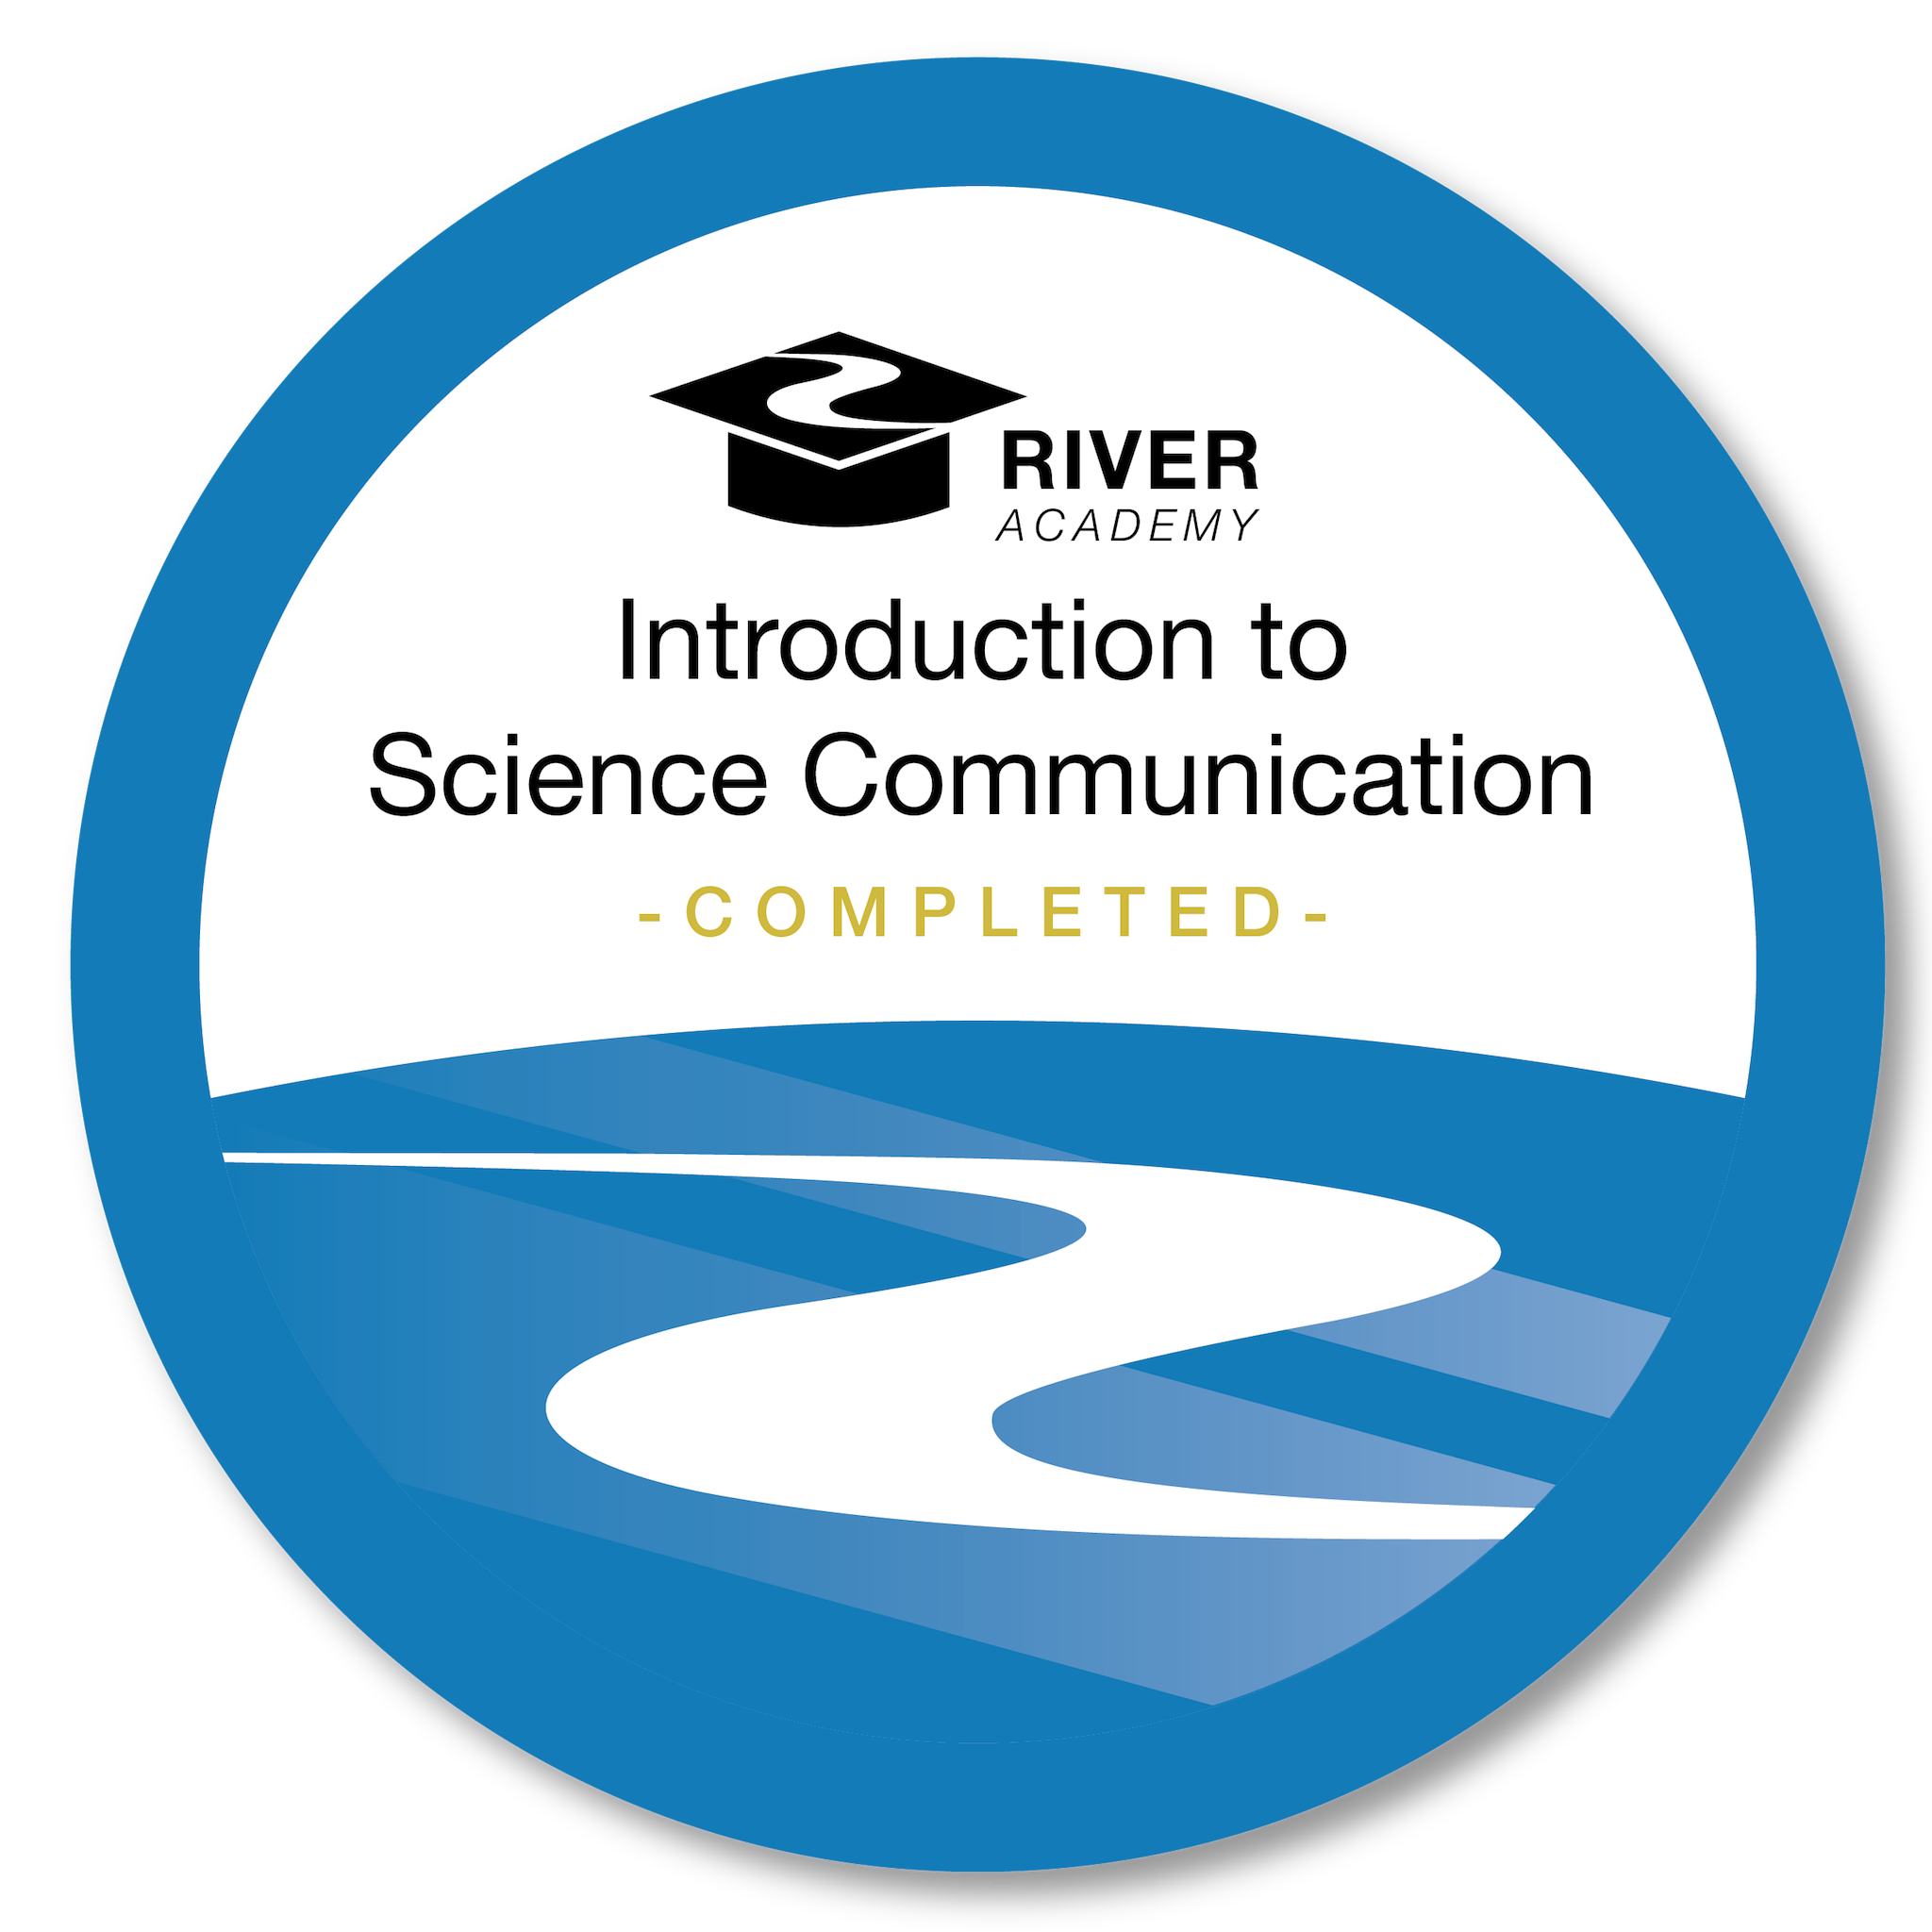 Introduction to Science Communication